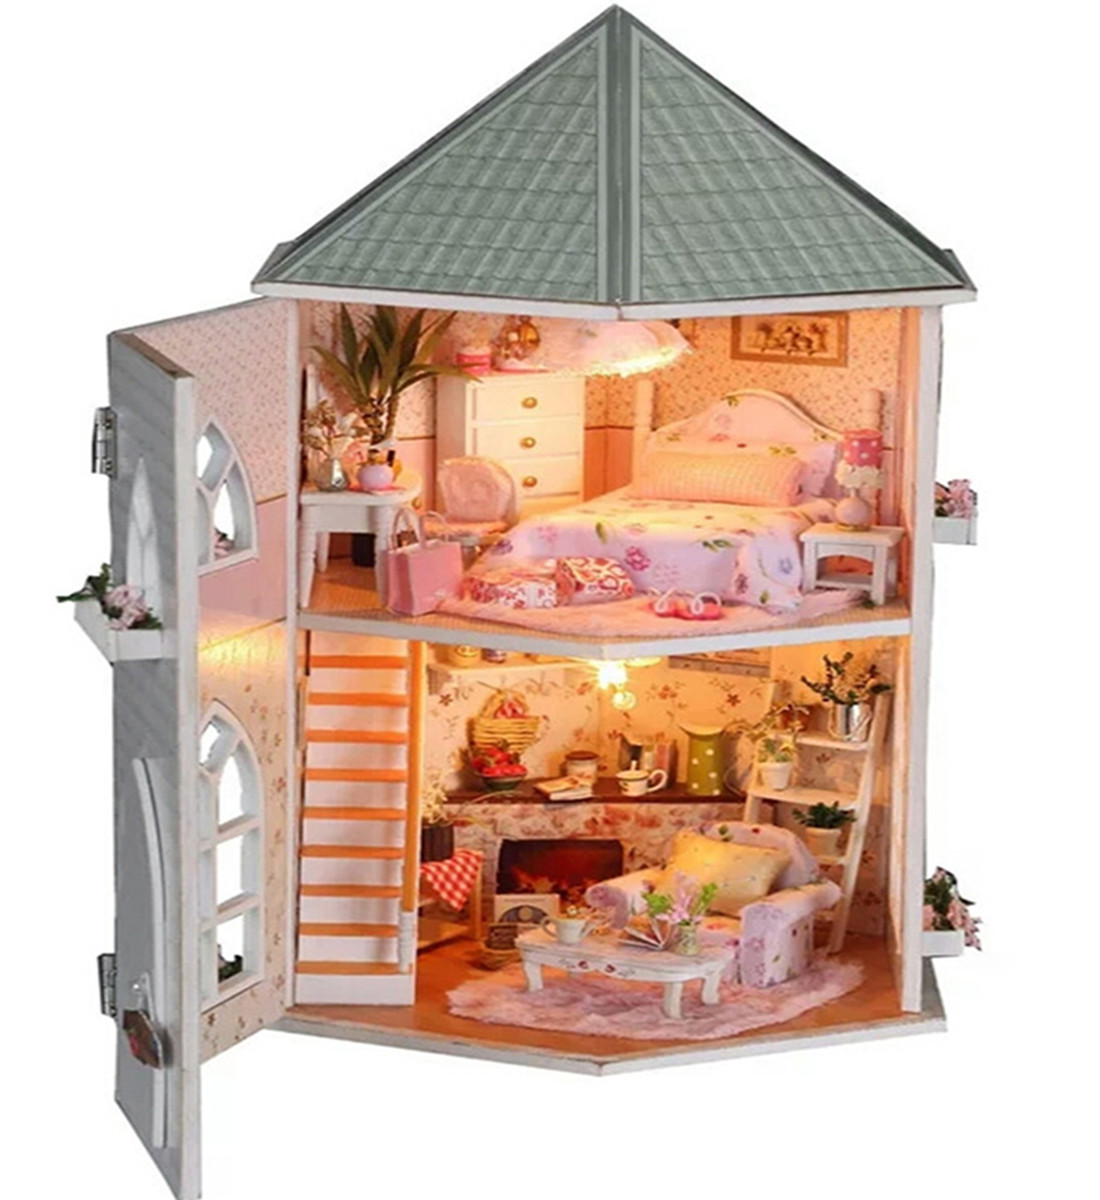 DIY House Love Fortress Wooden Assemble Building Model House Valentine Christmas Gift DIY For Women Gift 30 X 20 X 29cm